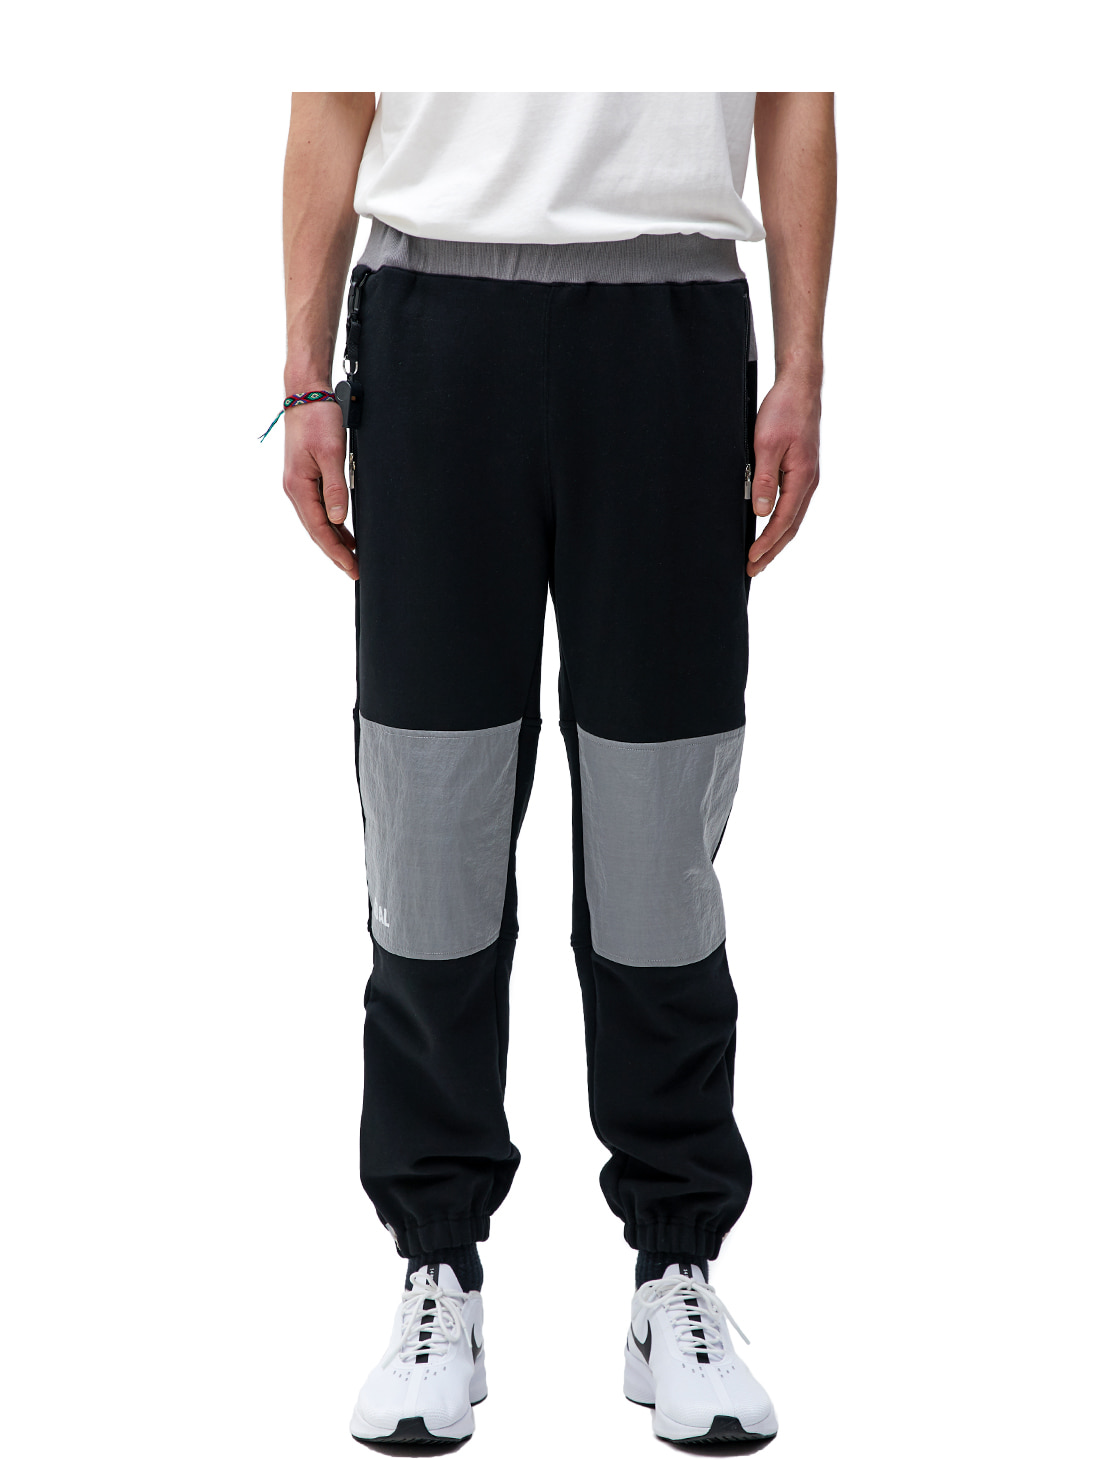 NYLON METAL MIXED TRACK PANTS - BLACK